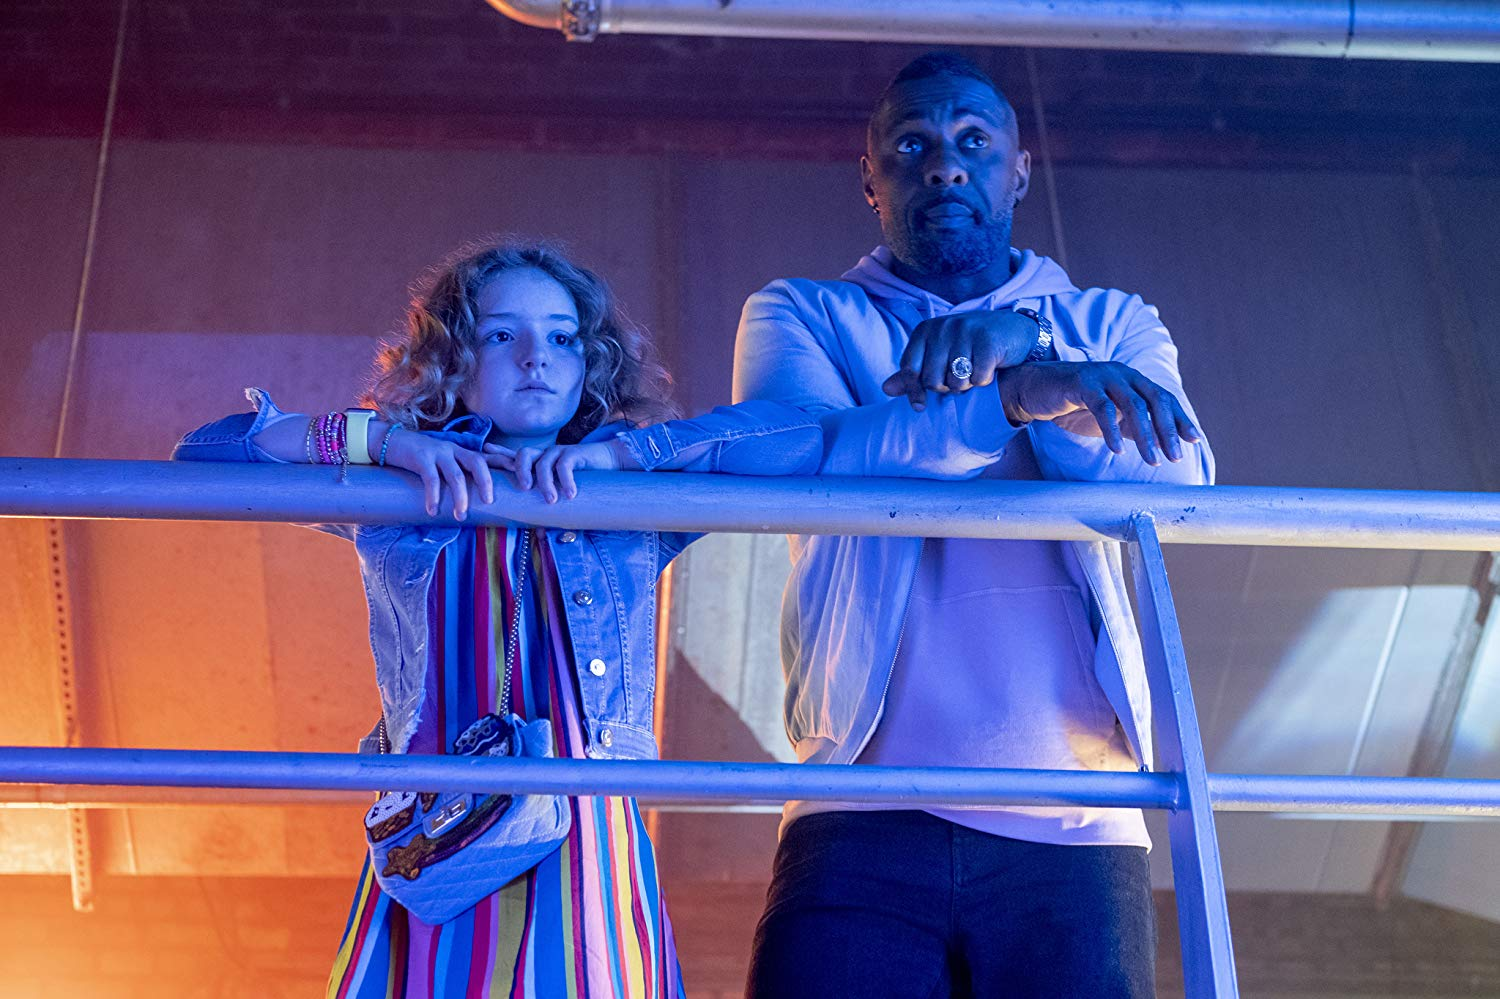 Frankie Hervey as Gabby and Idris Elba as Charlie in 'Turn Up Charlie' (Source: IMDb)